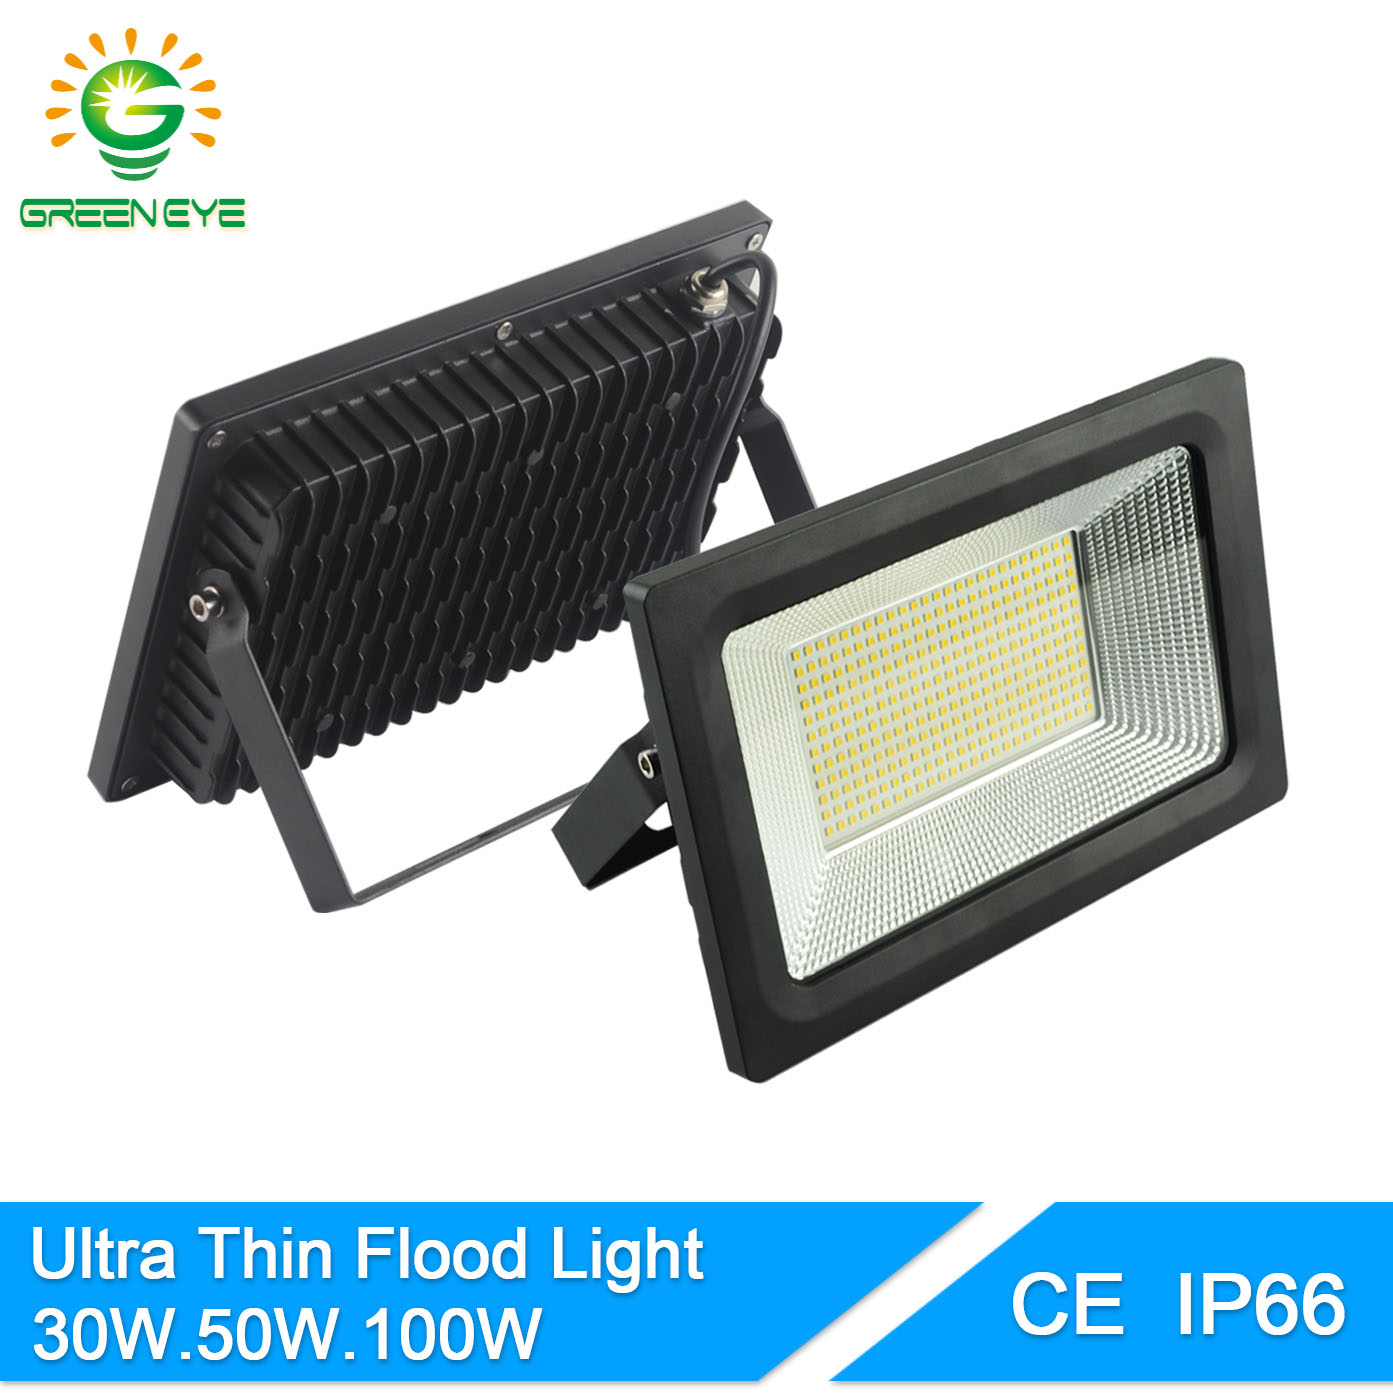 GreenEye IP66 Waterproof Ultra Thin 185-240V LED FloodLight 30W 50W 100W Spot LED 220V Flood Light Spotlight Outdoor Garden IP65